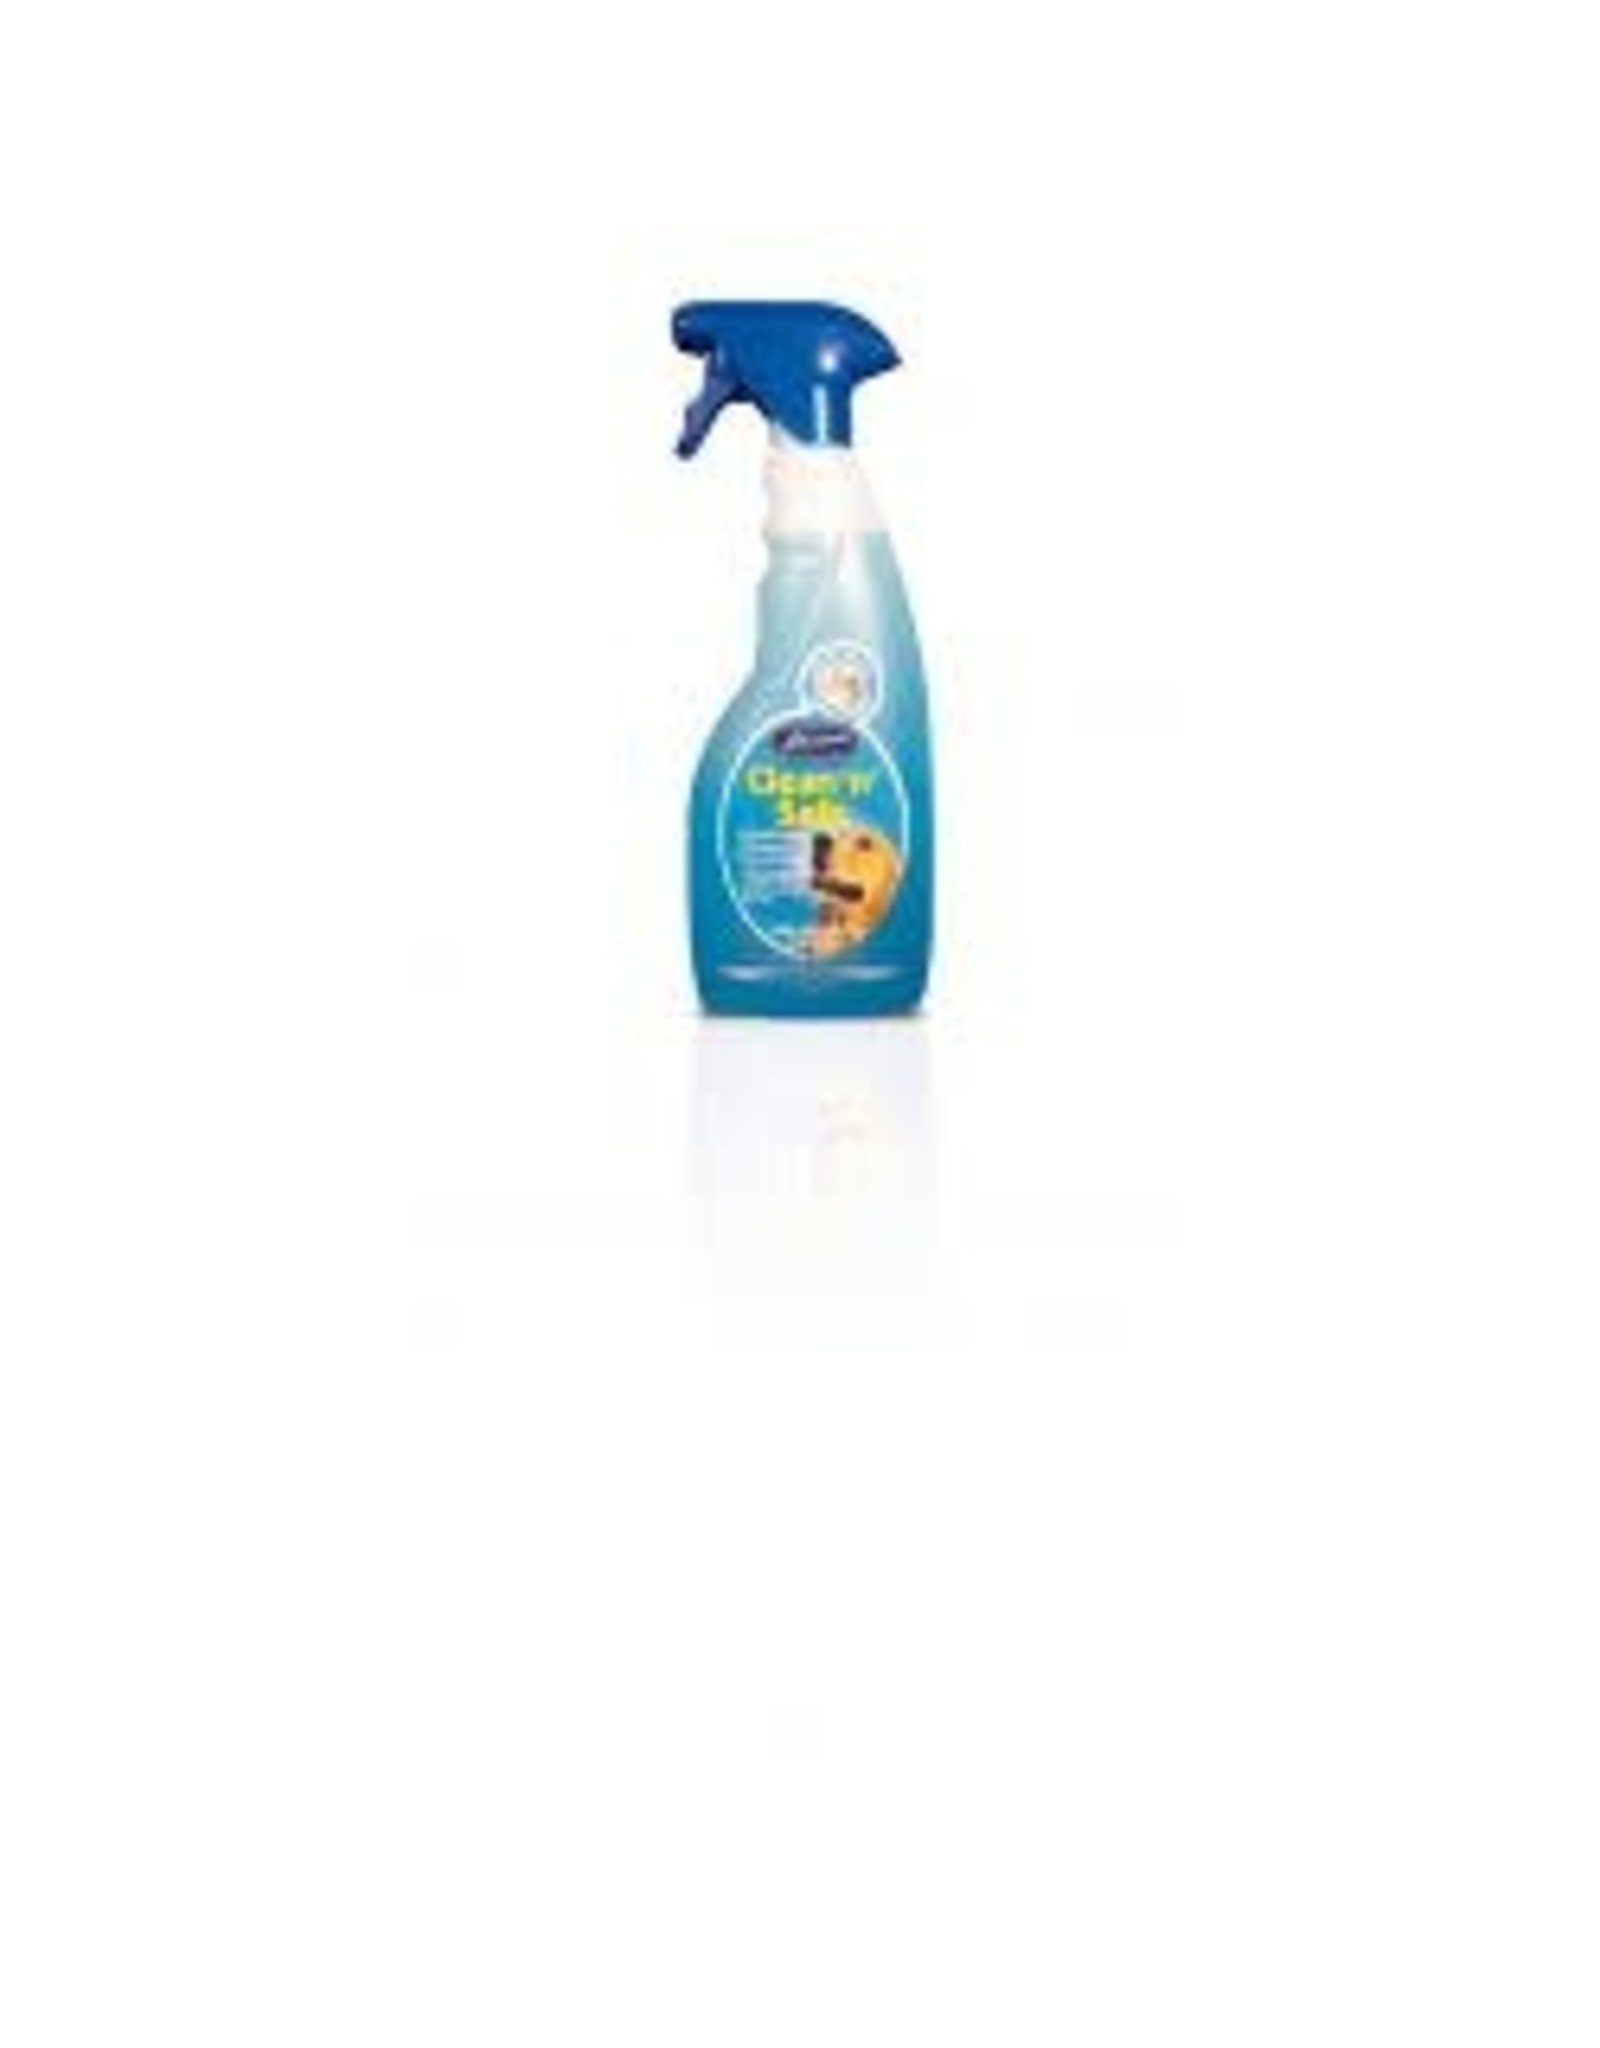 Johnsons Veterinary Products Johnsons Dog & Cat Disinfectant 500ml